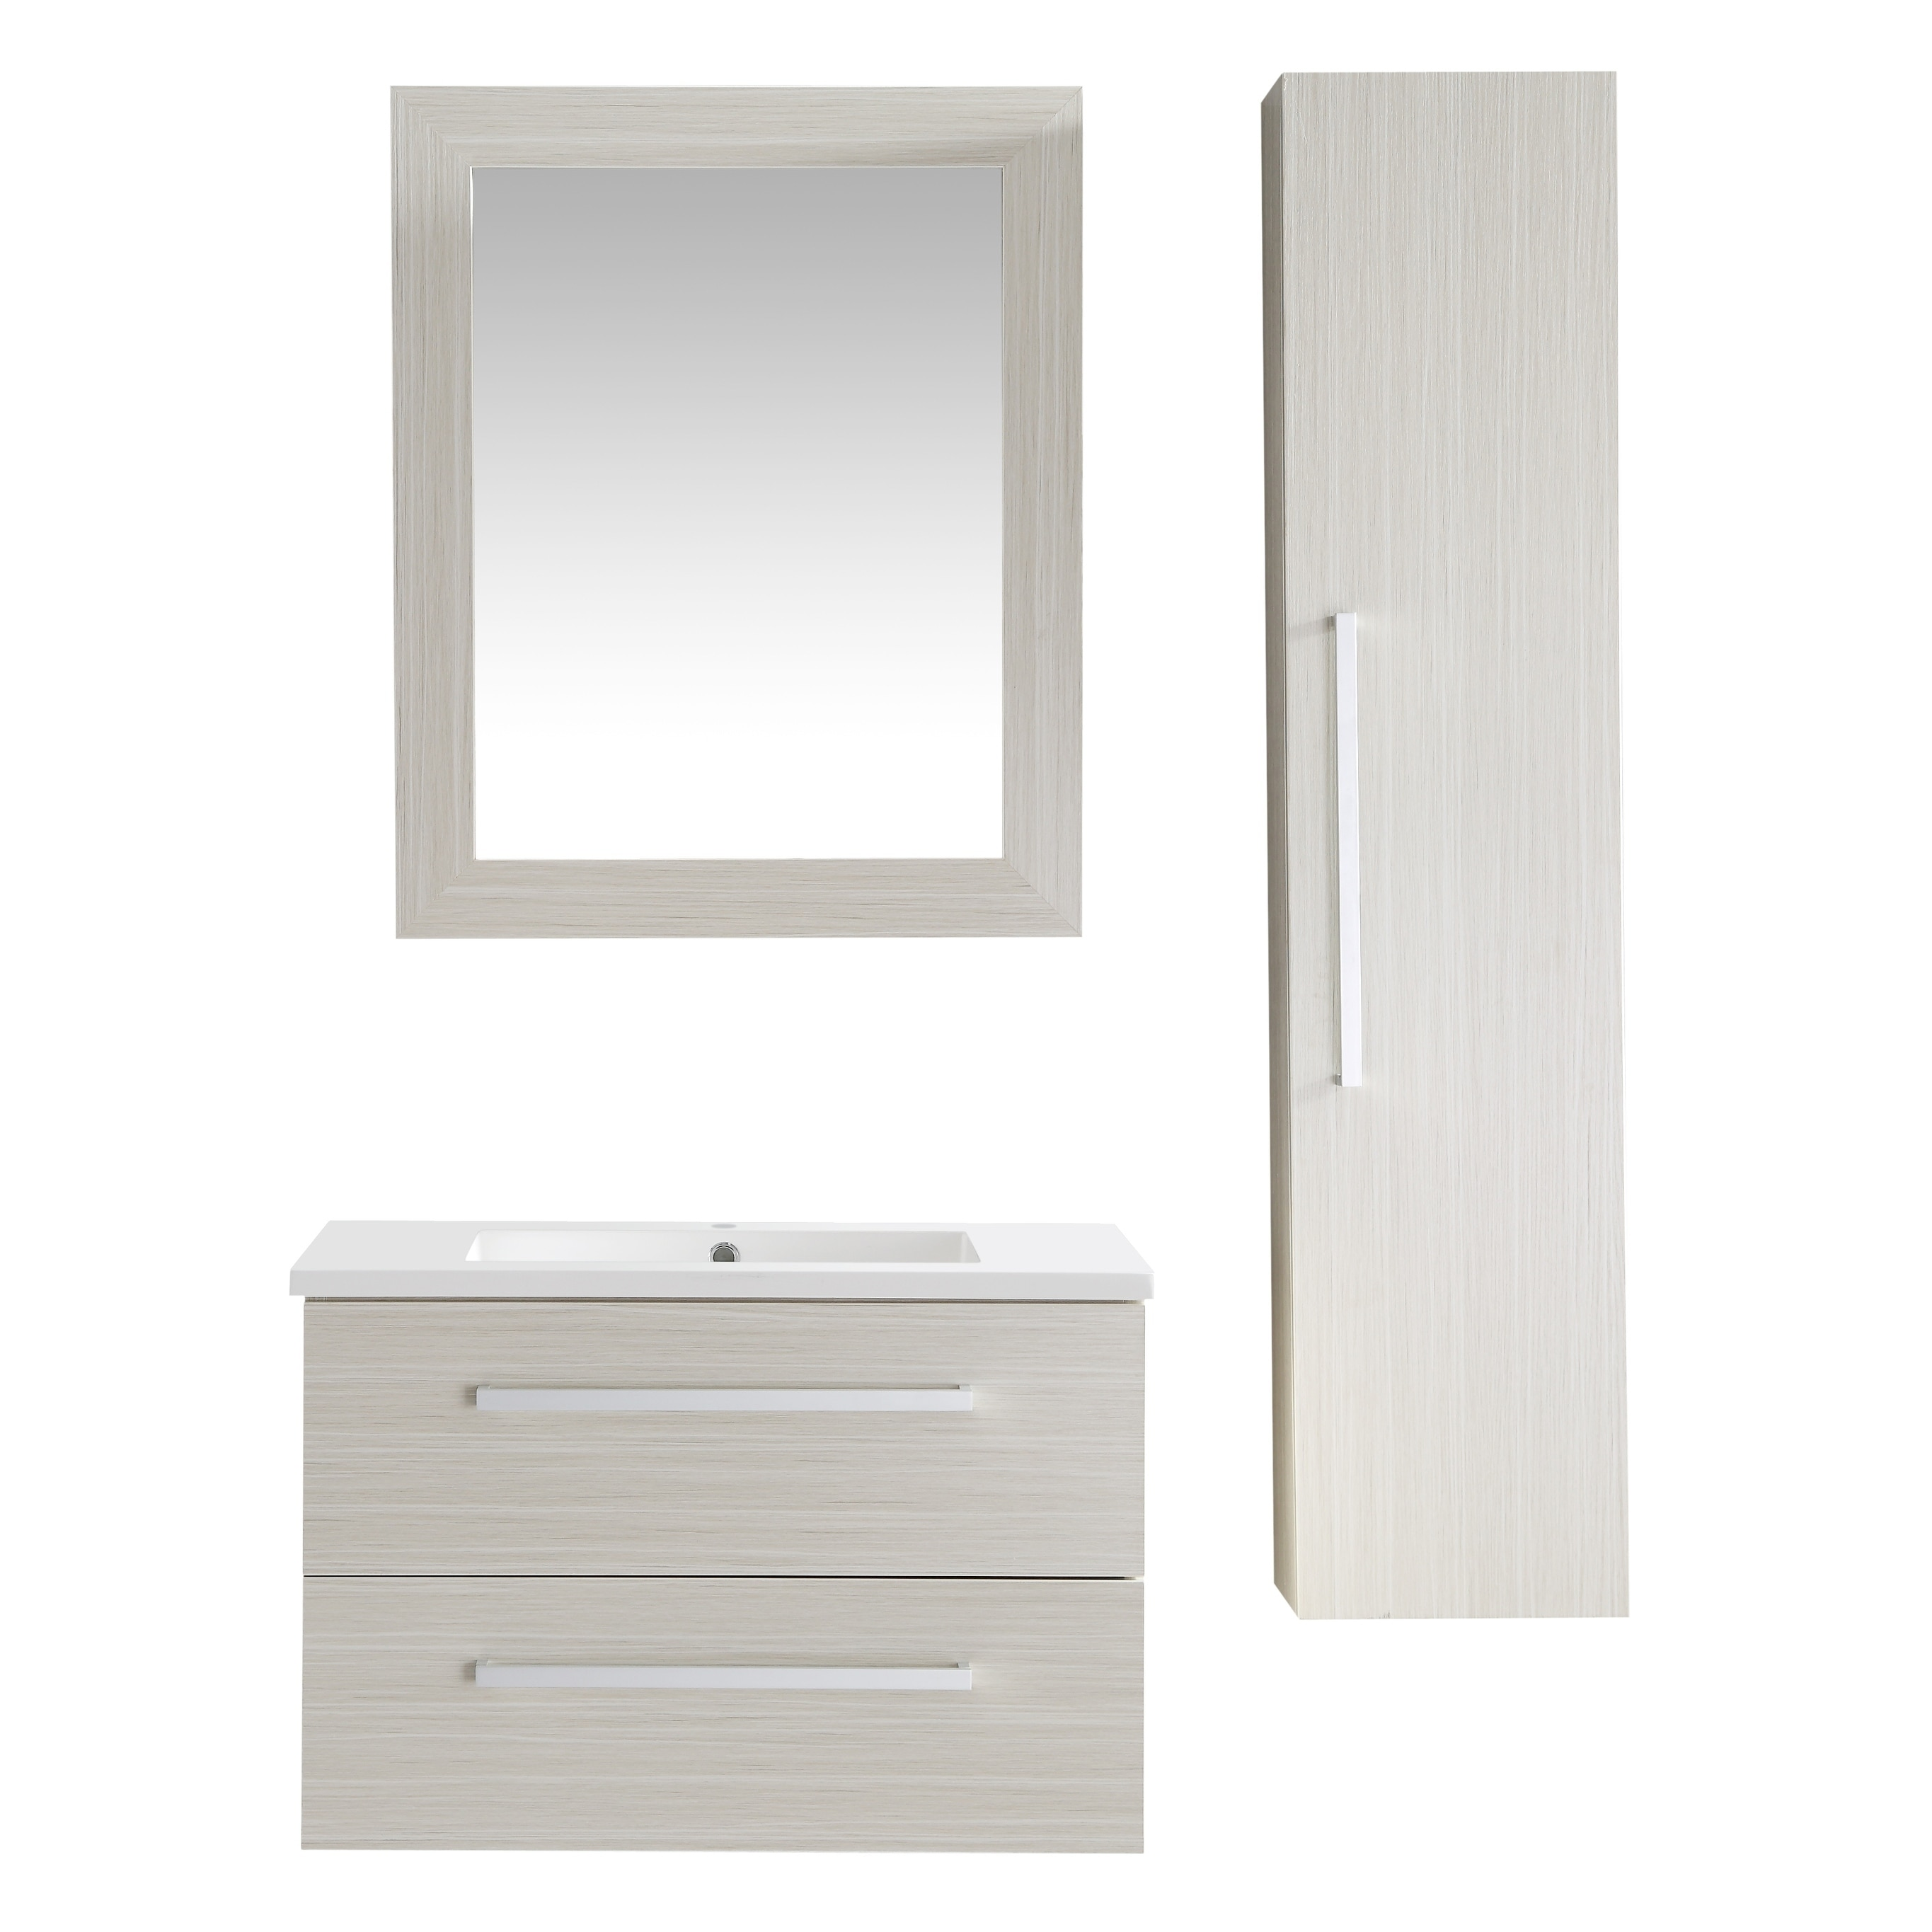 Shop Anzzi Conques 30 In W X 20 In H Bathroom Vanity Set In Rich